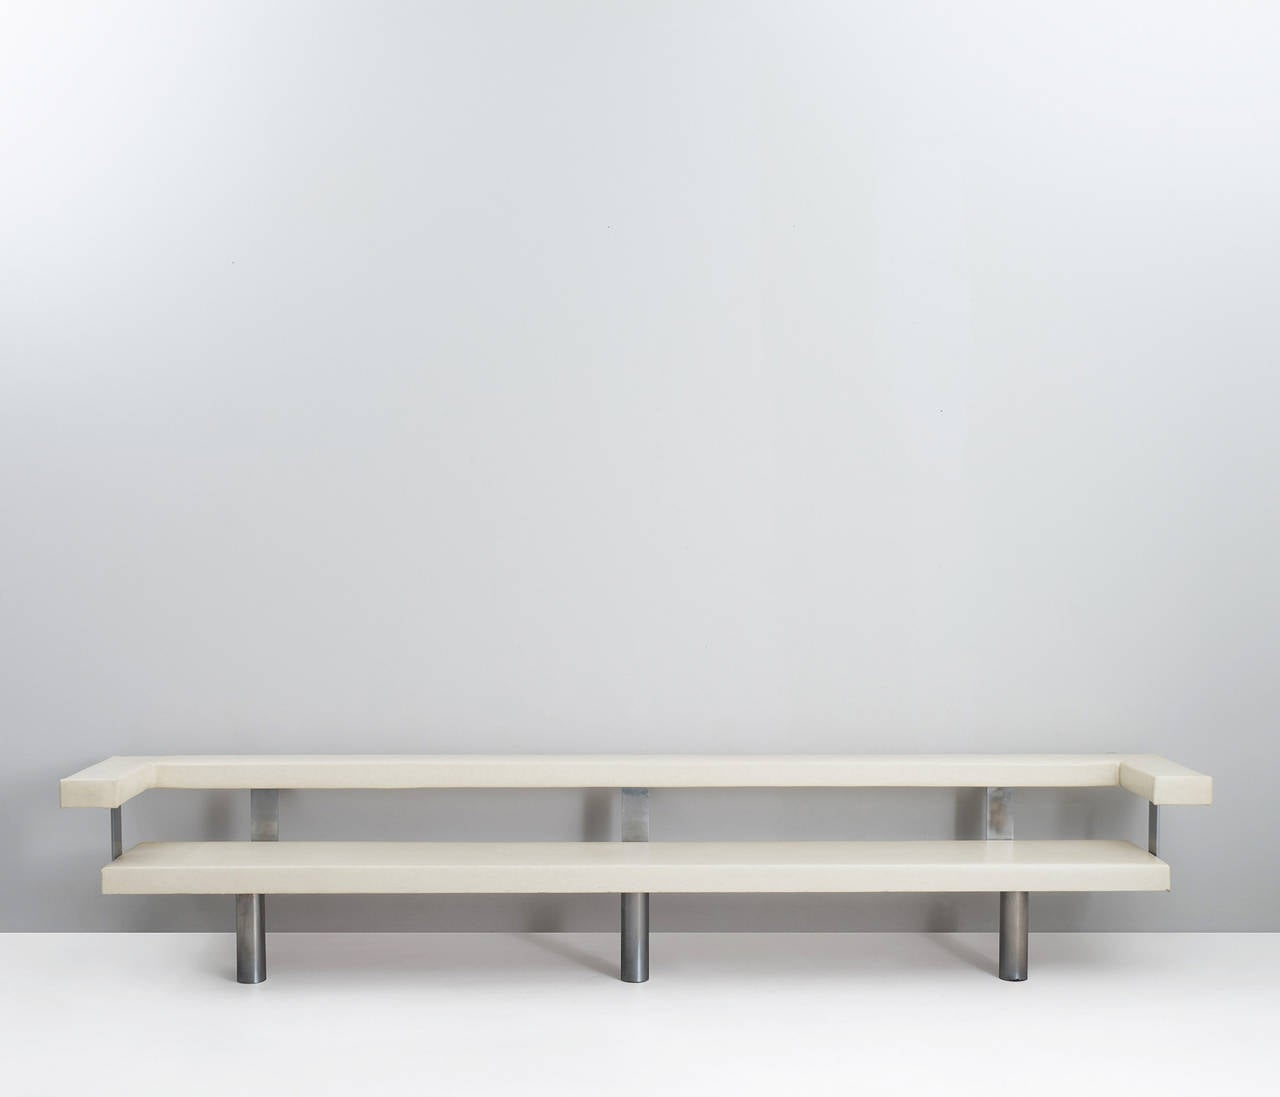 Long sofa by g w rietveld for sale at 1stdibs for Long couches for sale